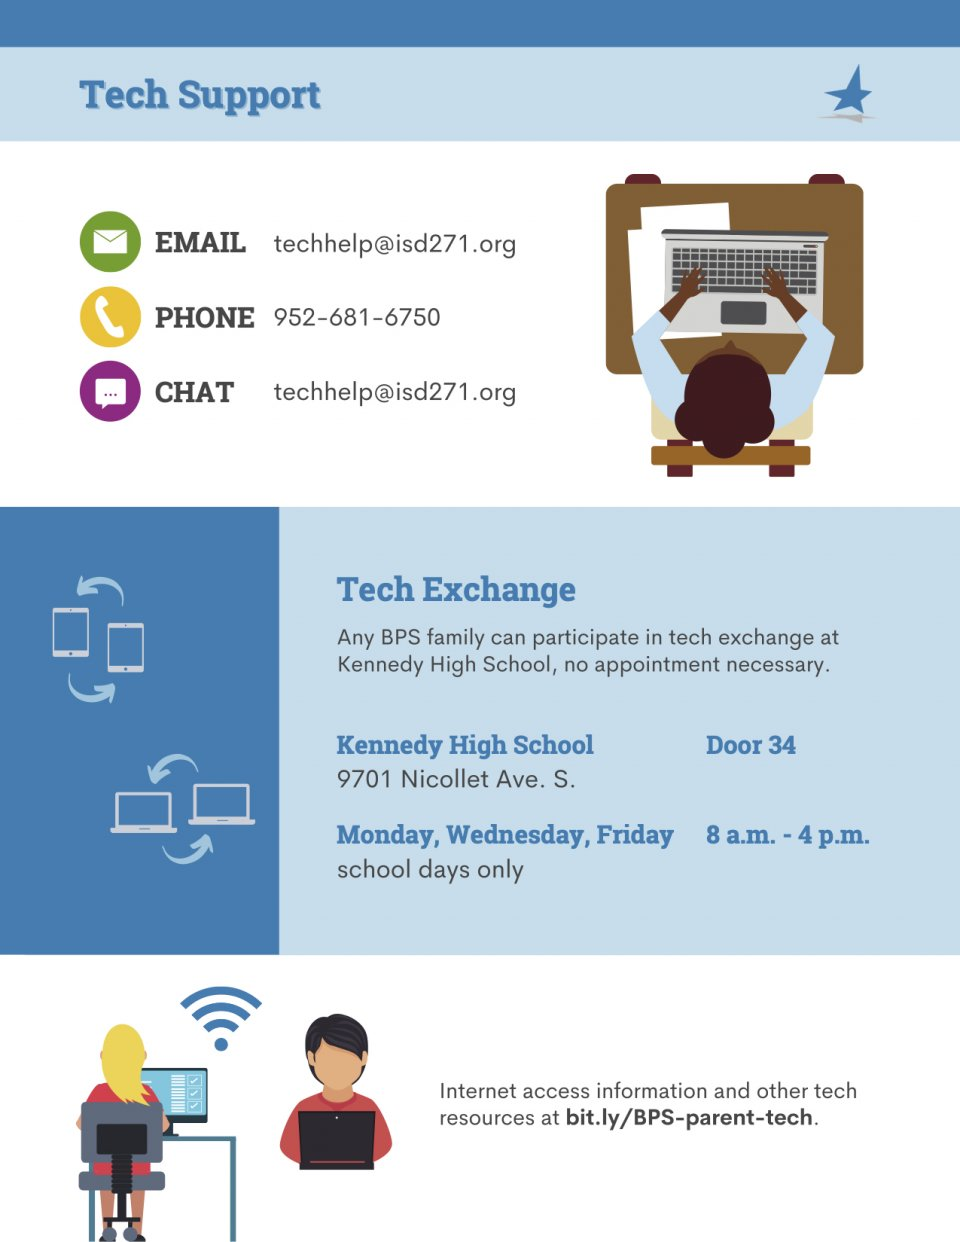 Tech support: Email techhelp@isd271.org, Phone: 952-681-6750, Chat: techhelp@isd271.org